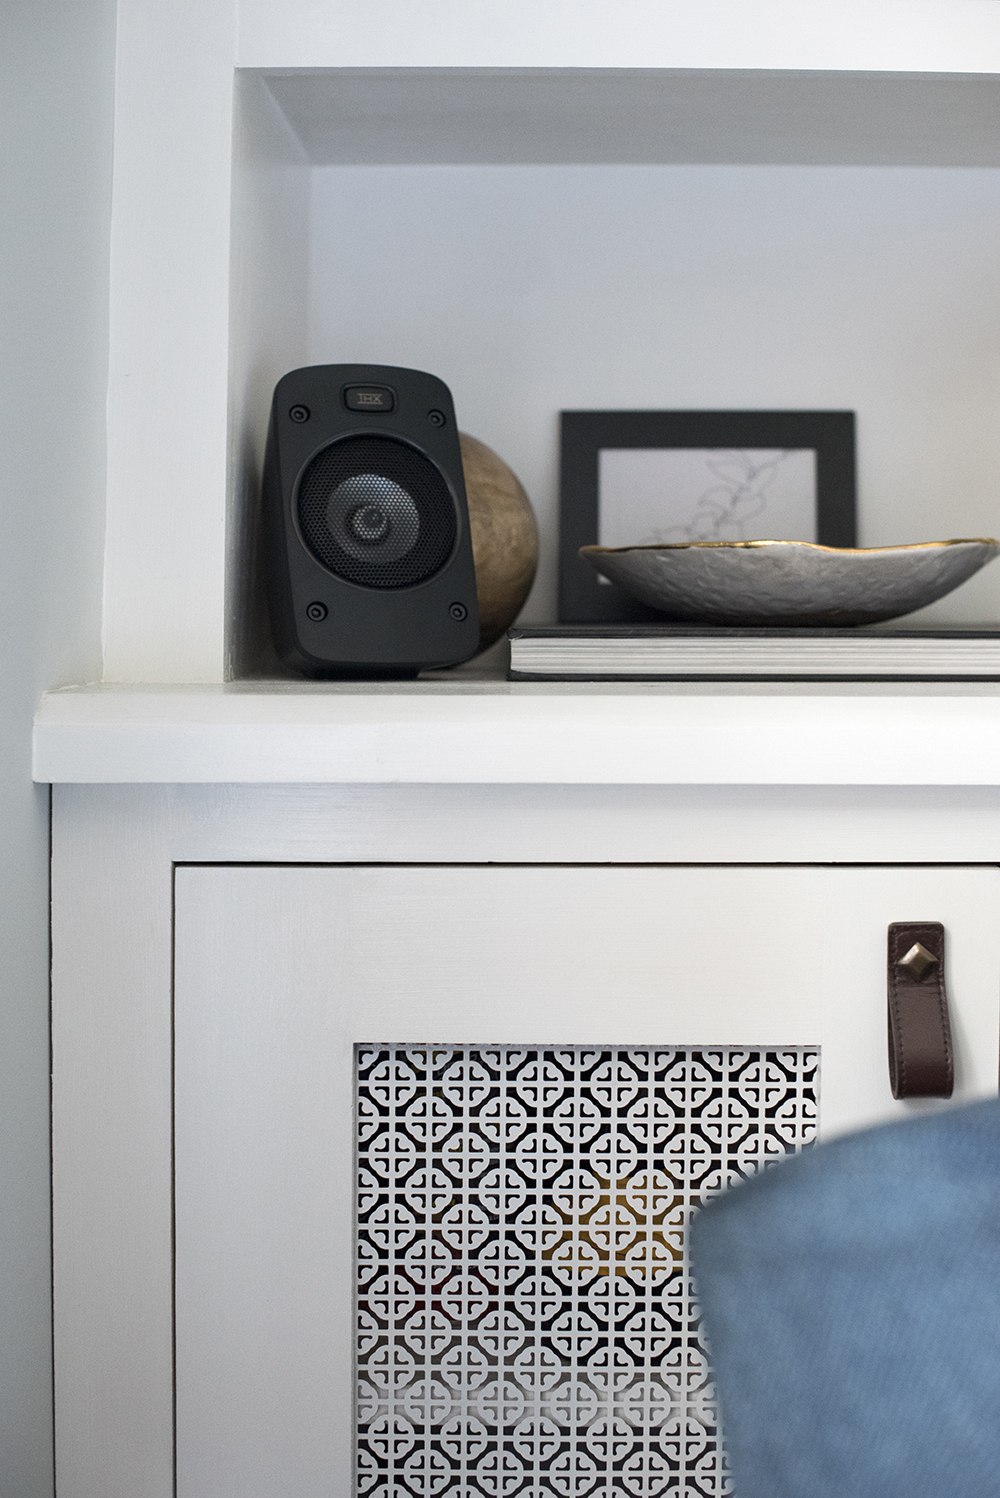 How to Stylishly Incorporate Tech into your Home - roomfortuesday.com